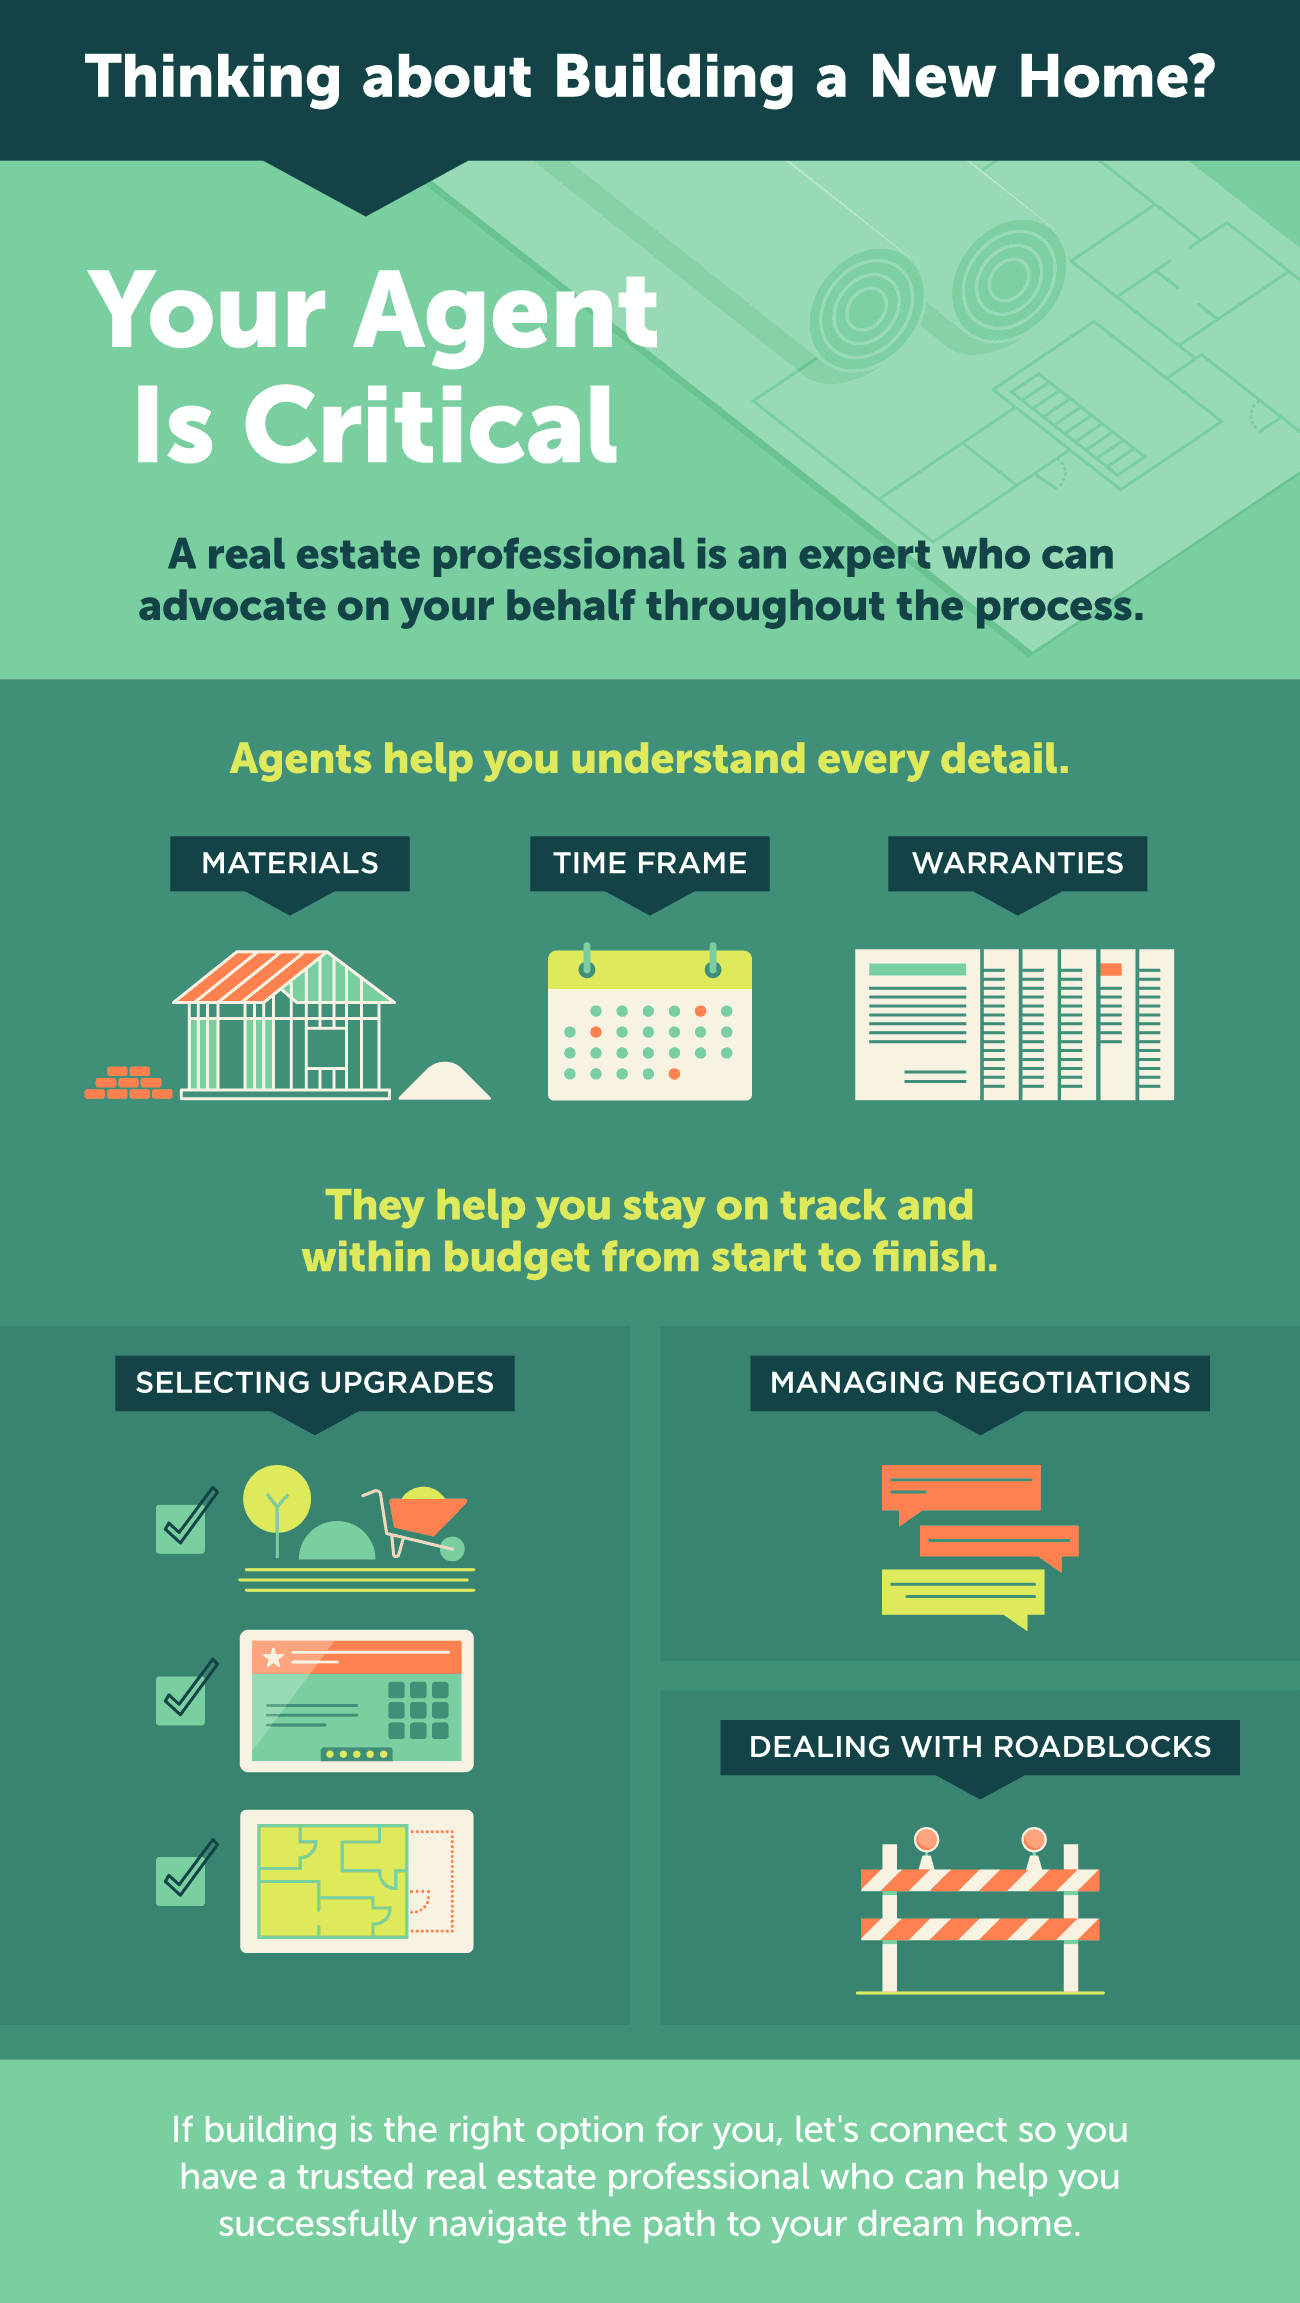 Thinking about Building a New Home INFOGRAPHIC